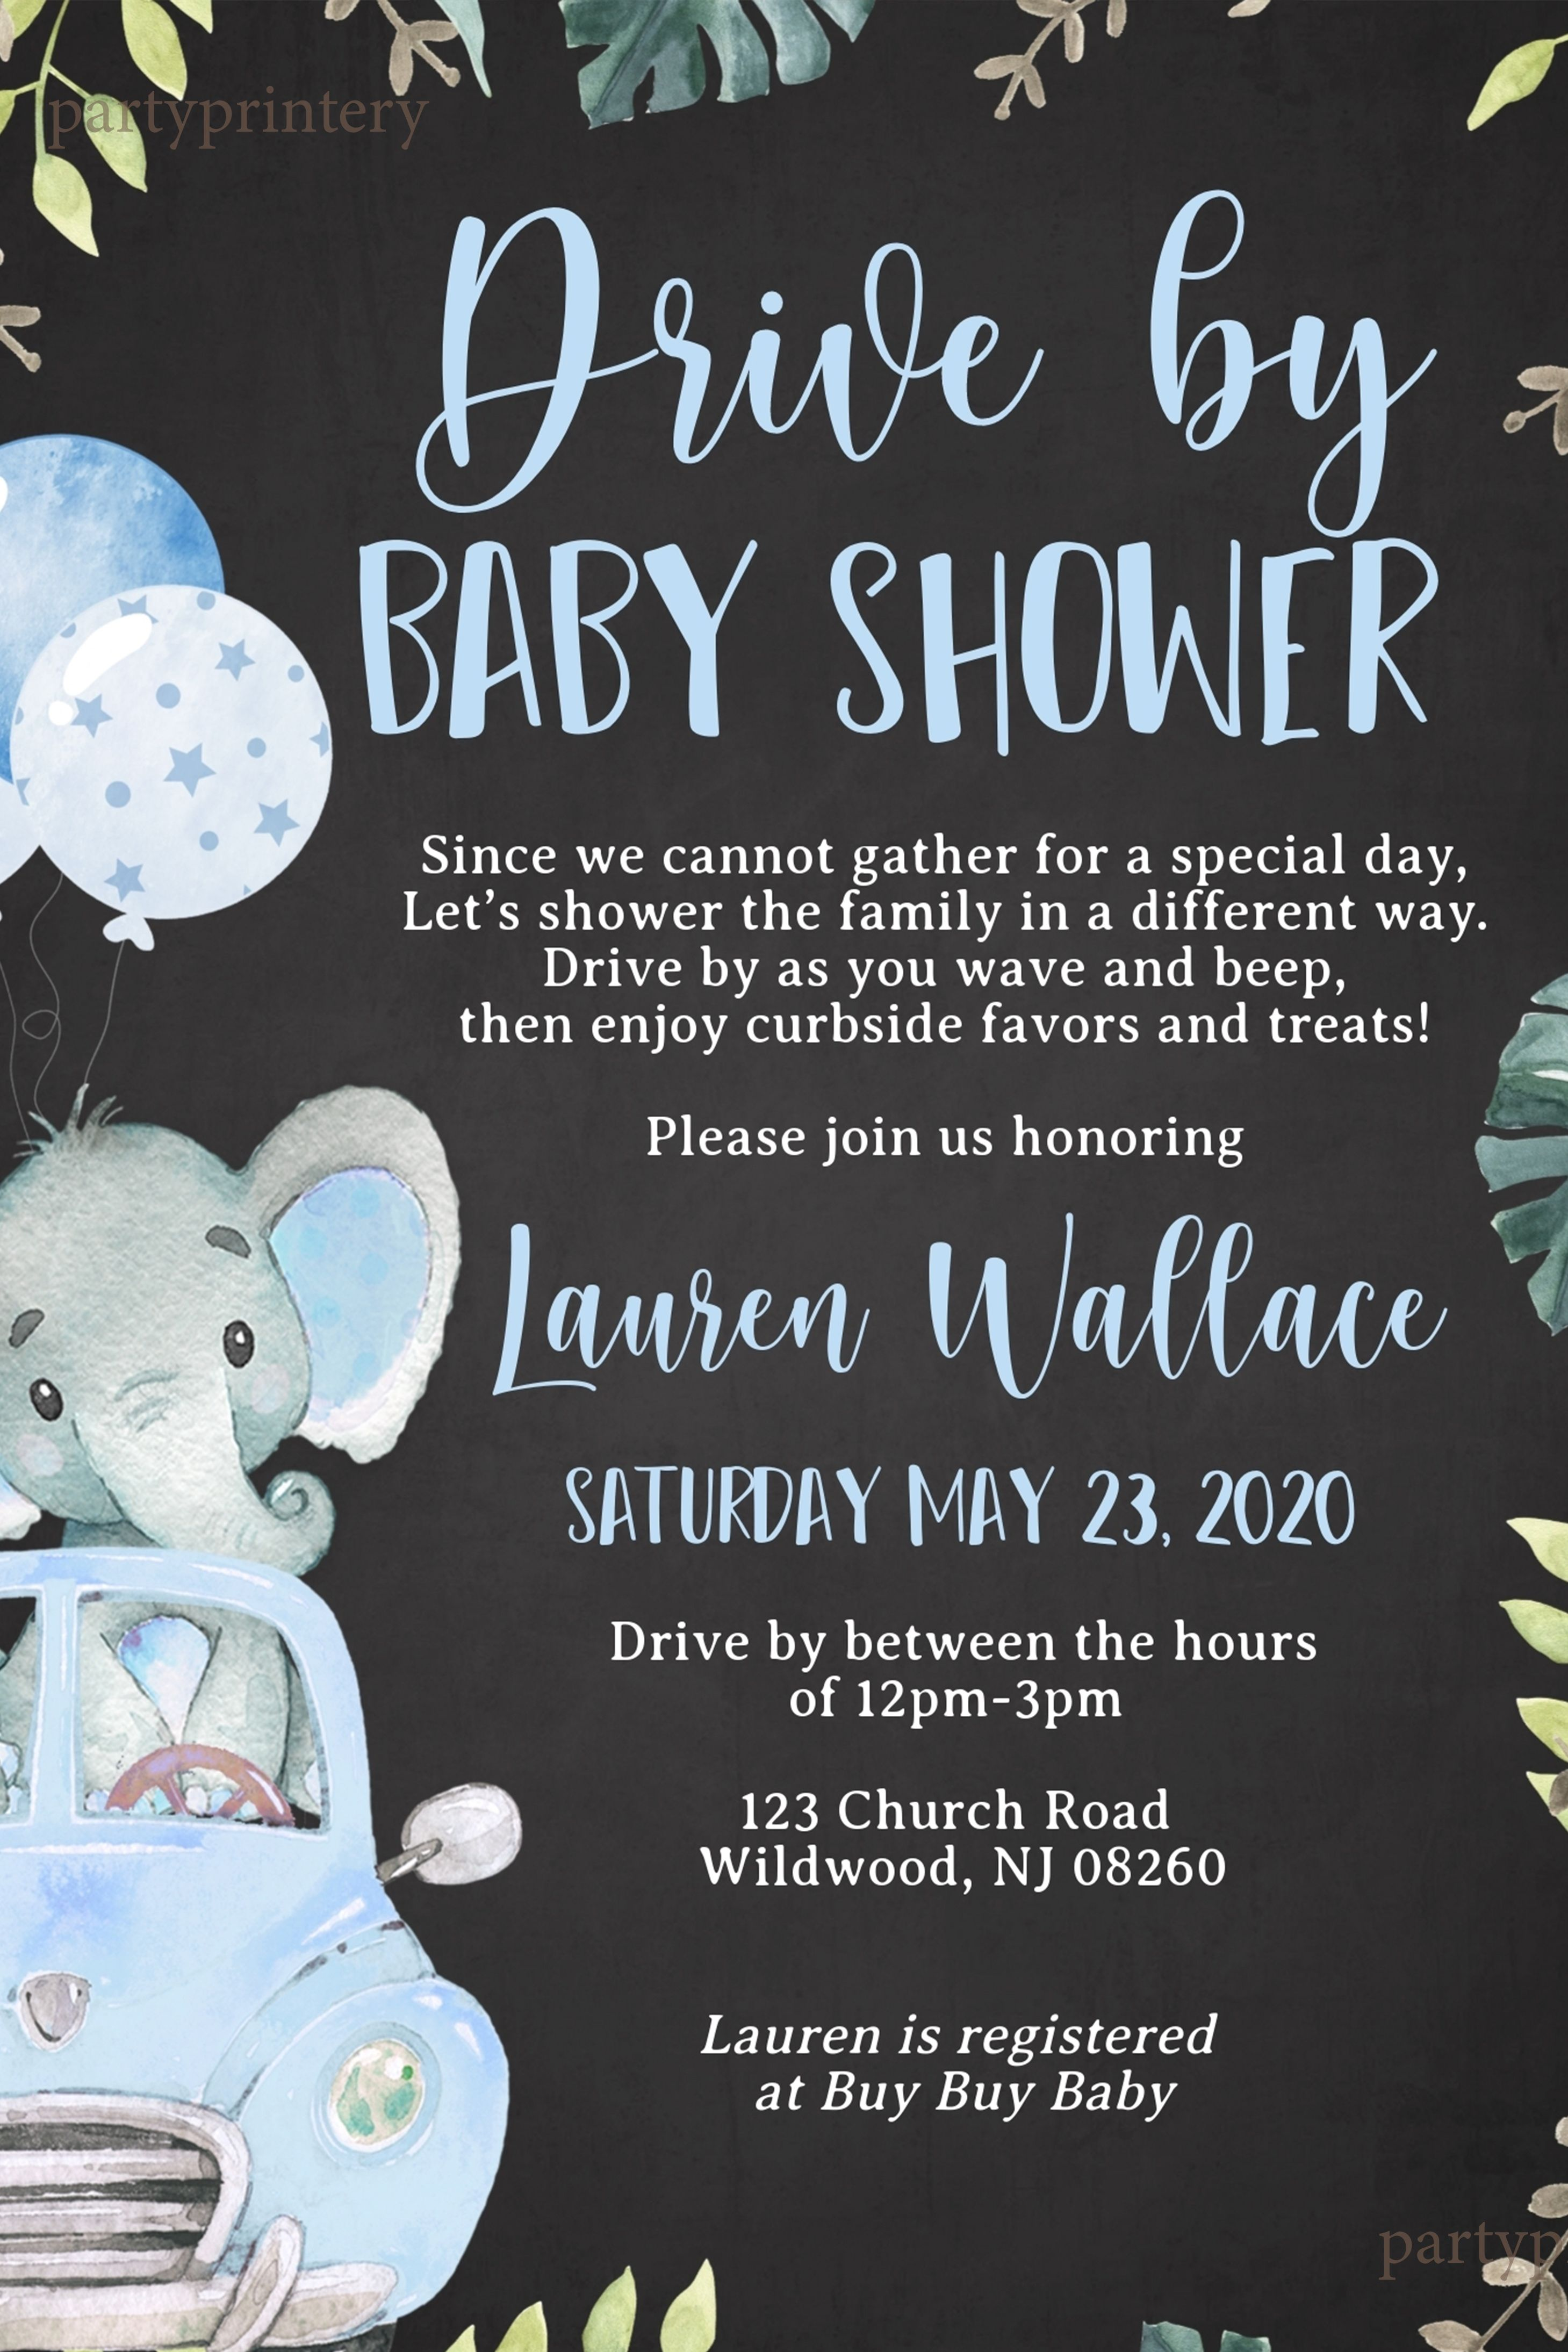 Drive By Baby Shower Invitations For Boys With Elephants Etsy In 2020 Baby Shower Invitations For Boys Baby Shower Elephant Baby Showers